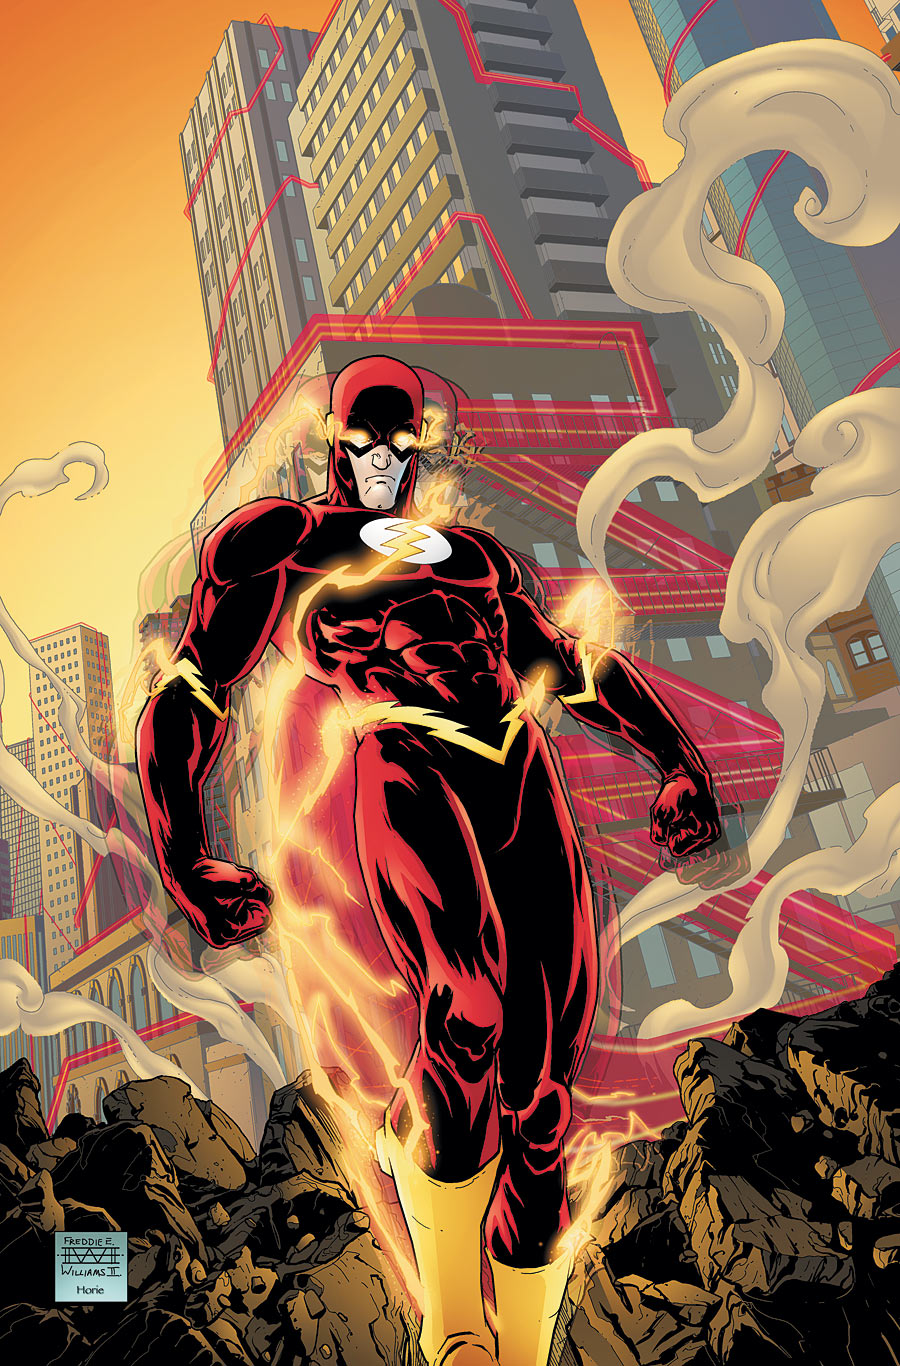 http://img2.wikia.nocookie.net/__cb20130711161214/marvel_dc/images/8/83/Flash_Wally_West_0006.jpg